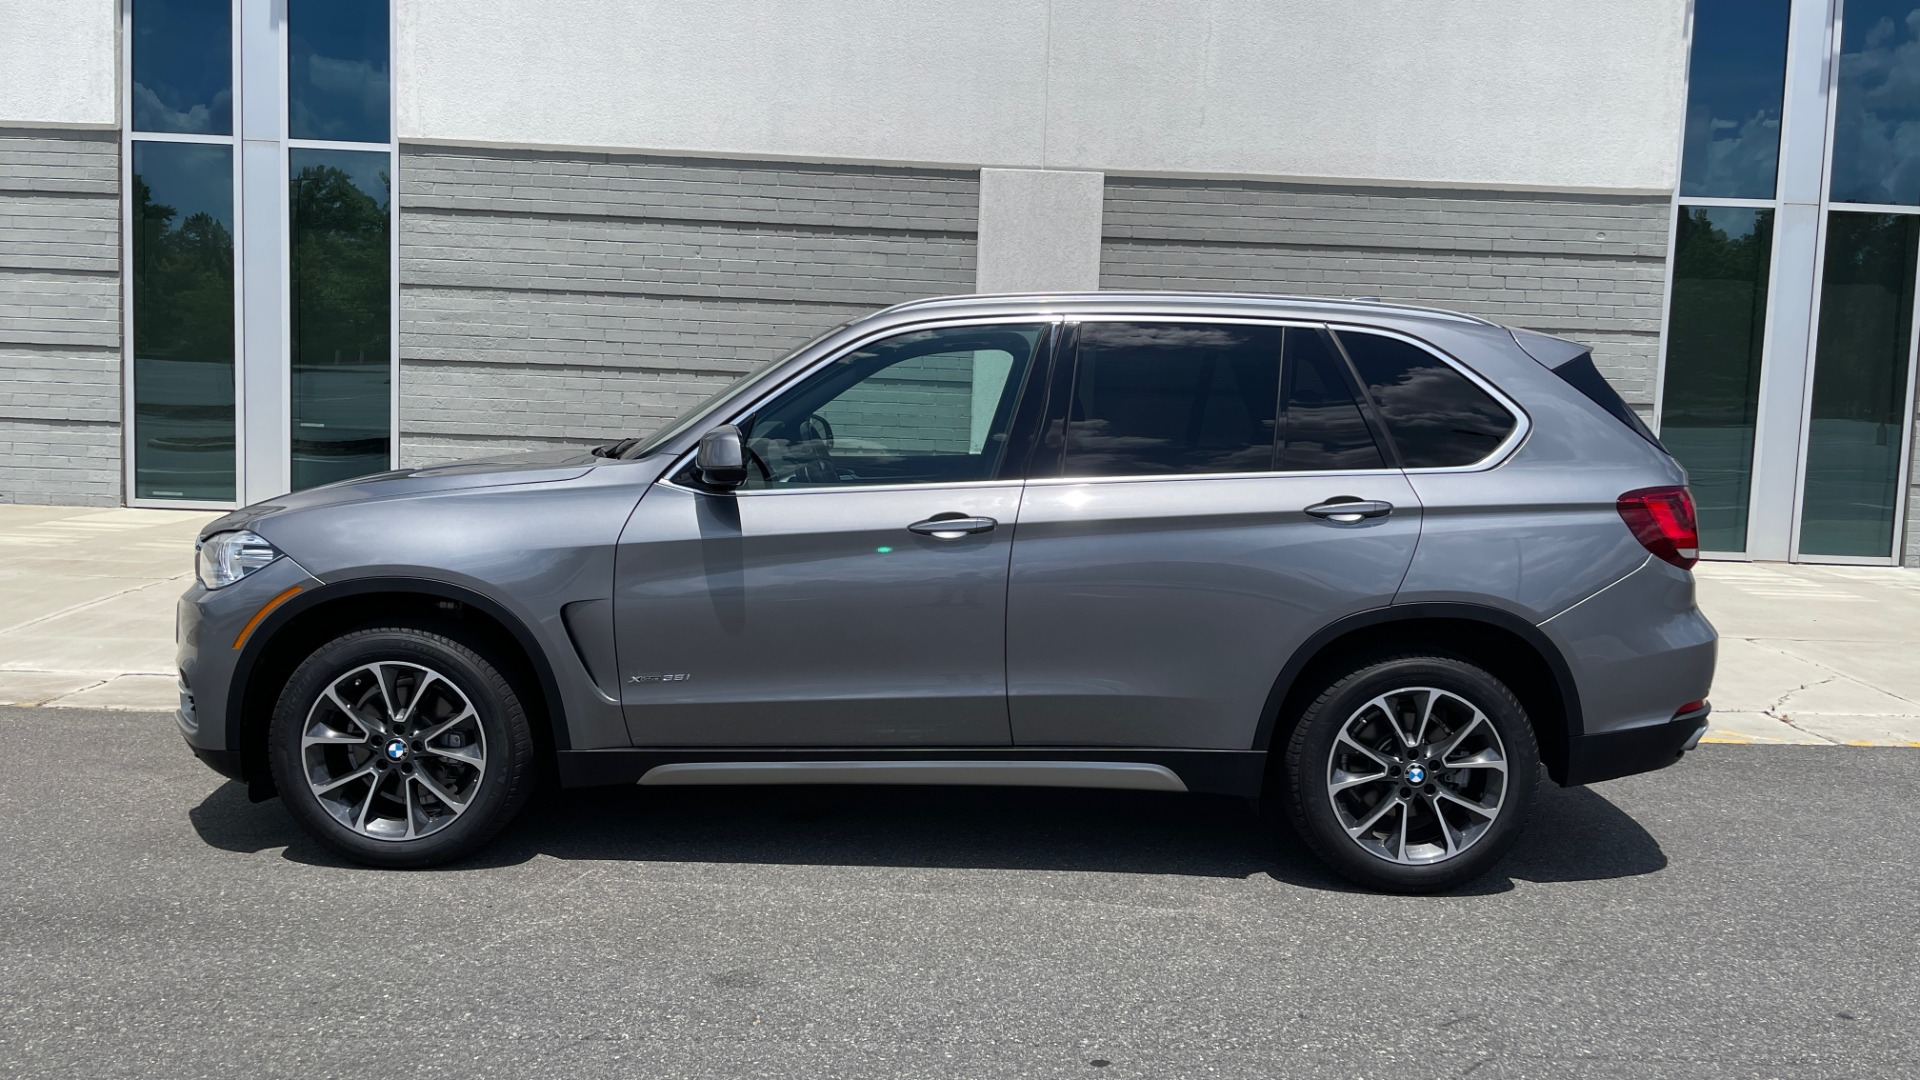 Used 2018 BMW X5 XDRIVE35I PREMIUM / DRVR ASST / WIRELESS CHARGING / CAMERAS for sale $46,995 at Formula Imports in Charlotte NC 28227 4